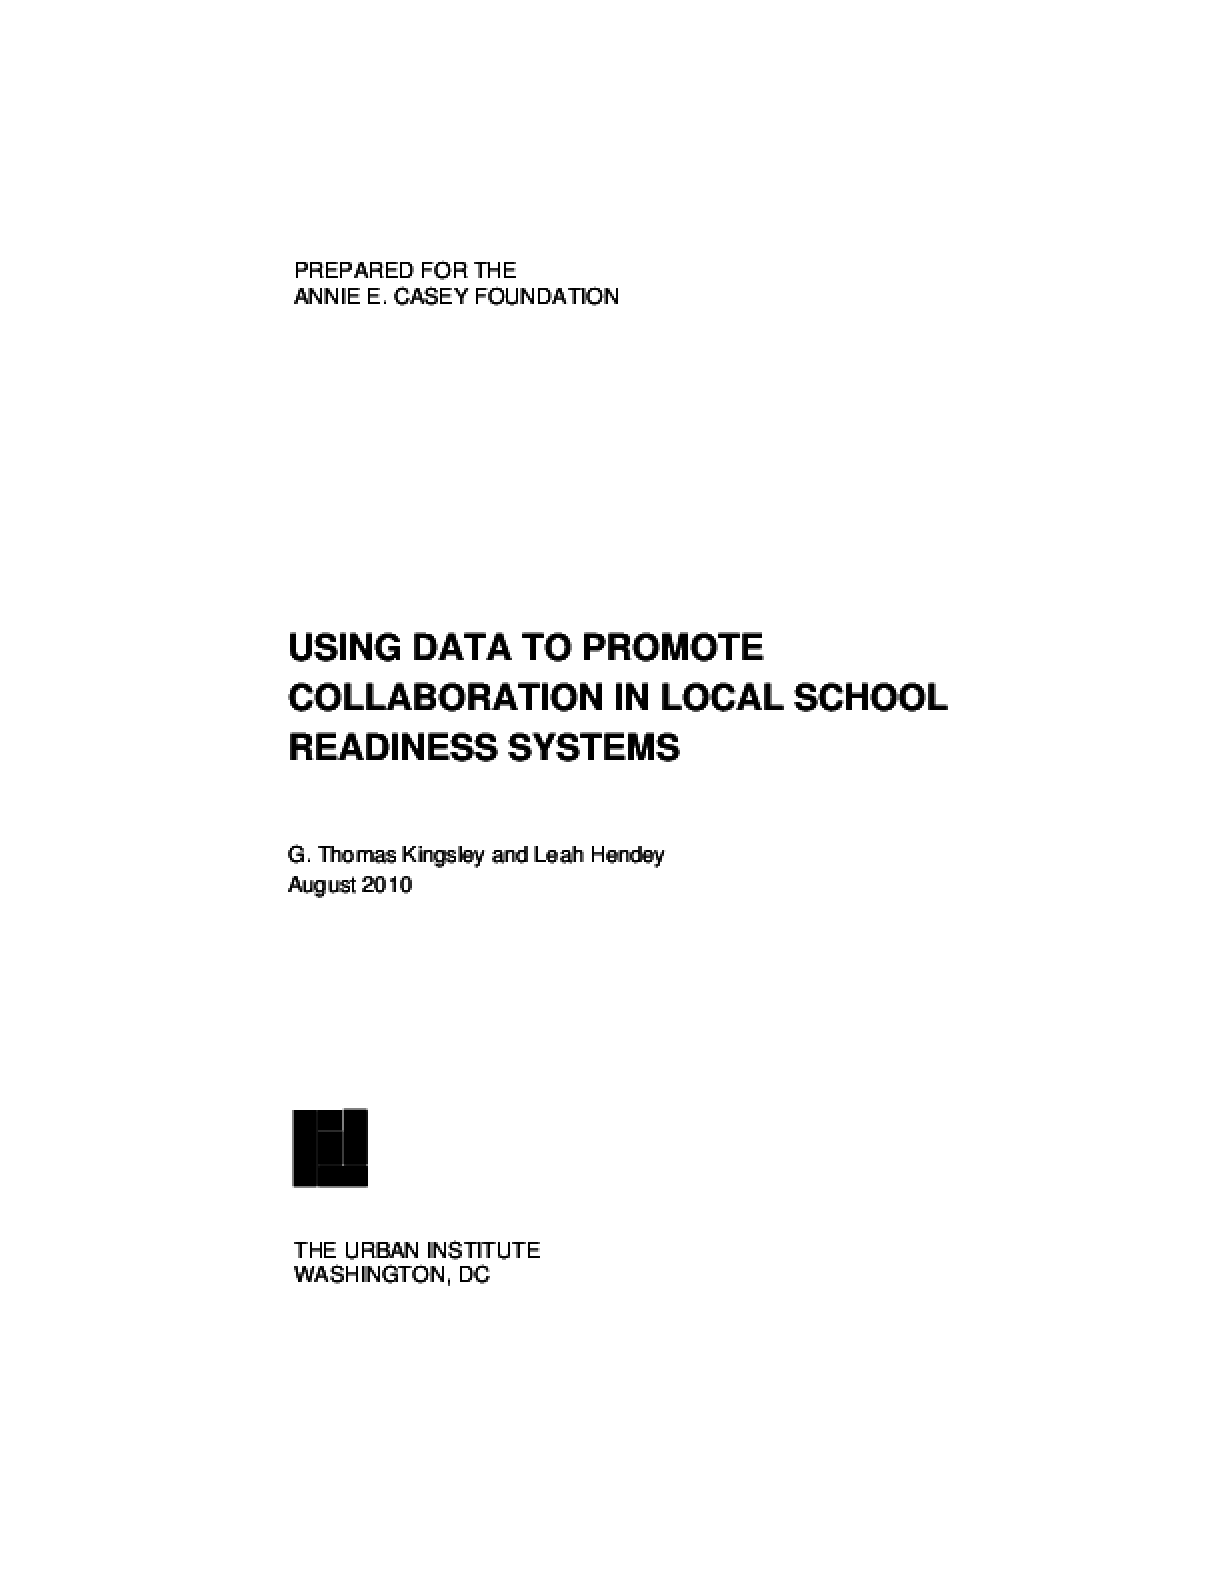 Using Data to Promote Collaboration in Local School Readiness Systems